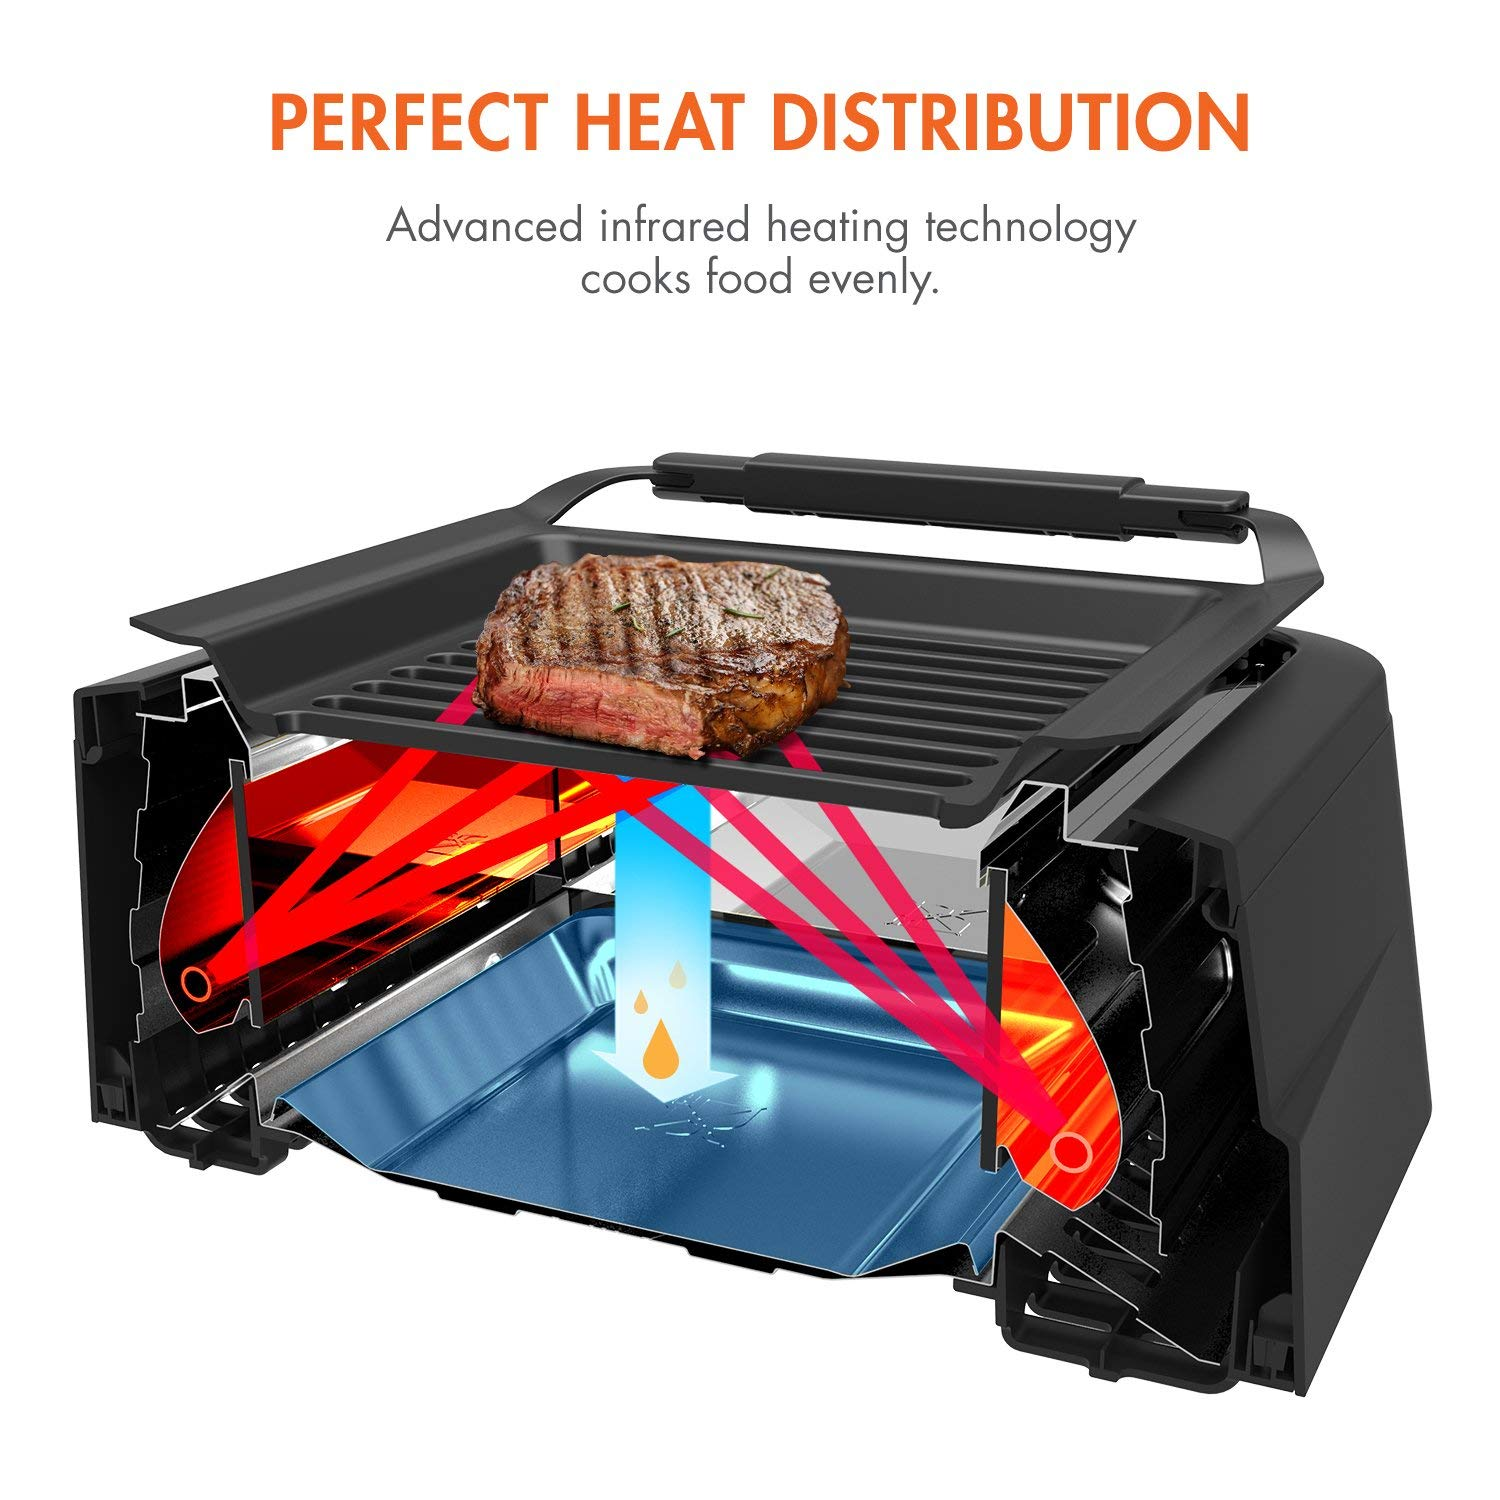 Tenergy Redigrill Smoke Less Infrared Grill Indoor Heating Electric Tabletop